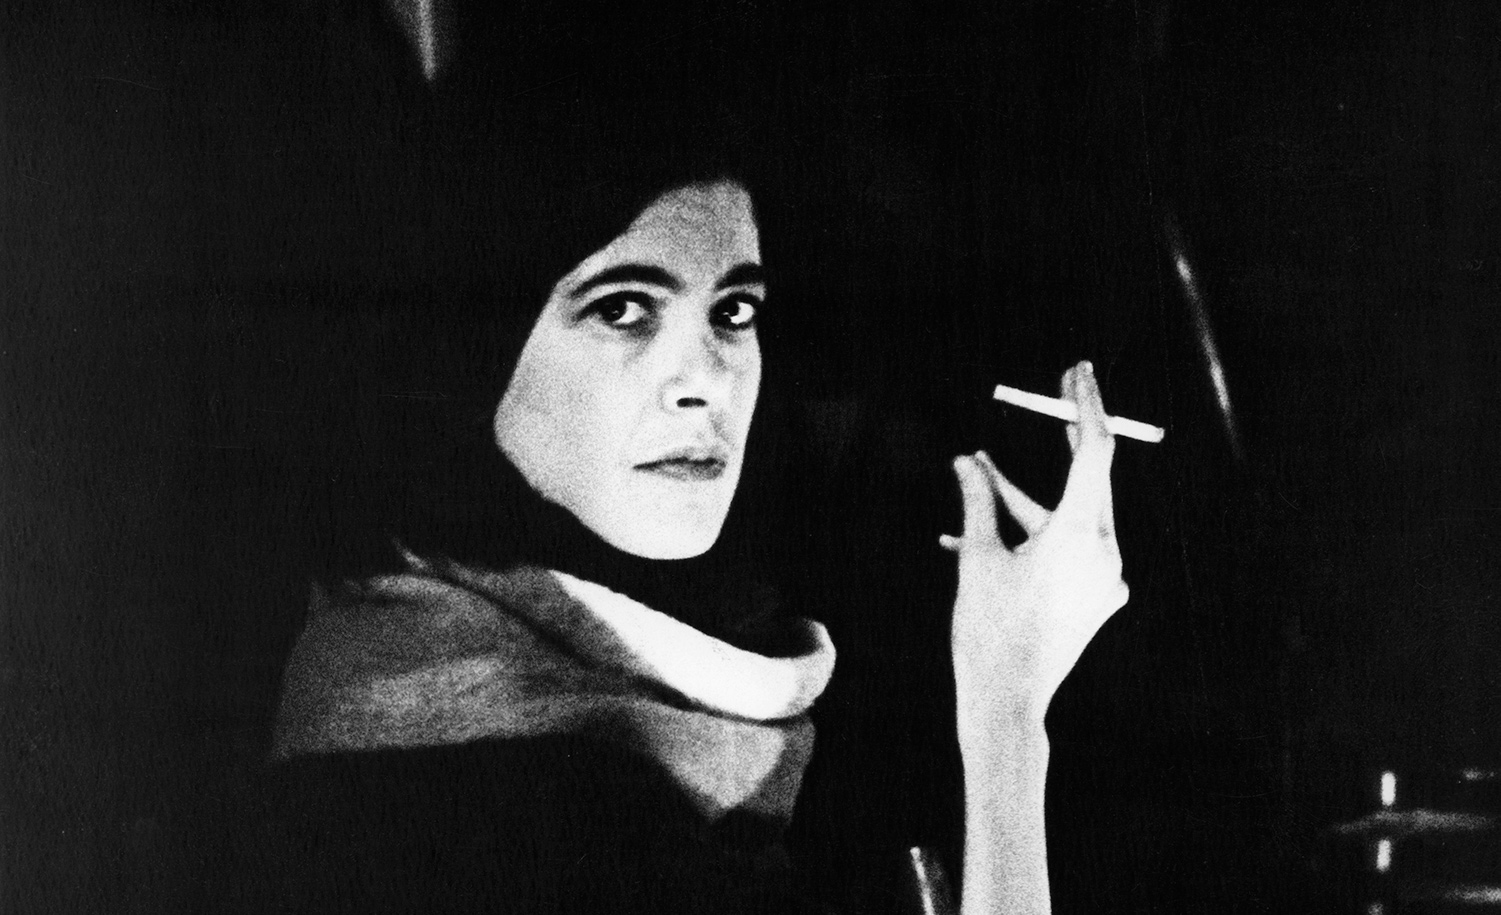 Susan Sontag in New York on December 2, 1962. Fred W. McDarrah/Getty Images.